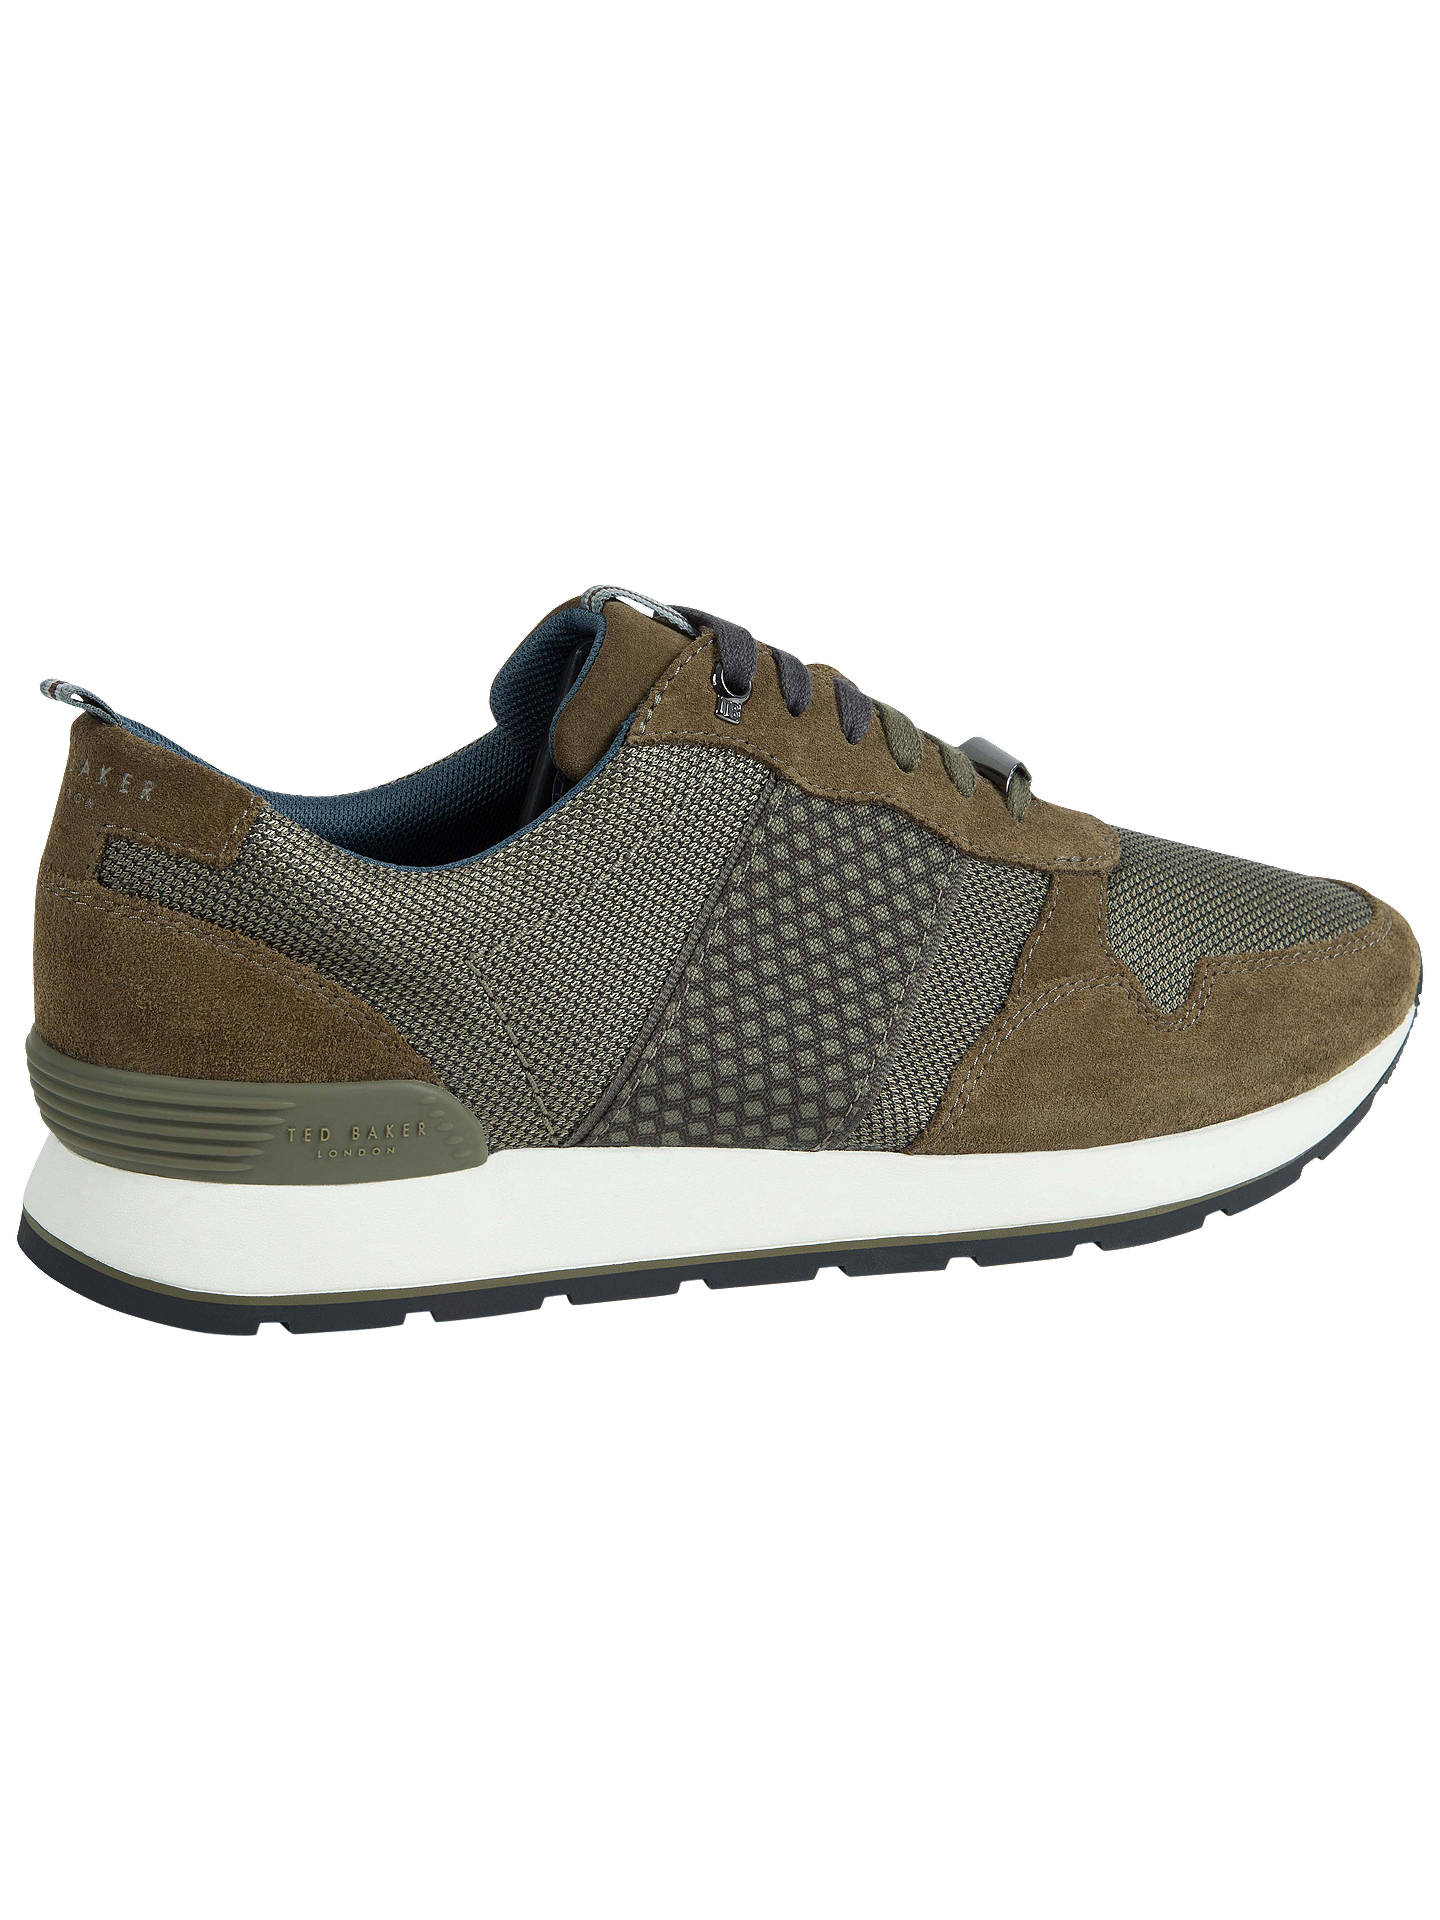 52ac6f7482b0d Ted Baker Hebey Trainers at John Lewis   Partners